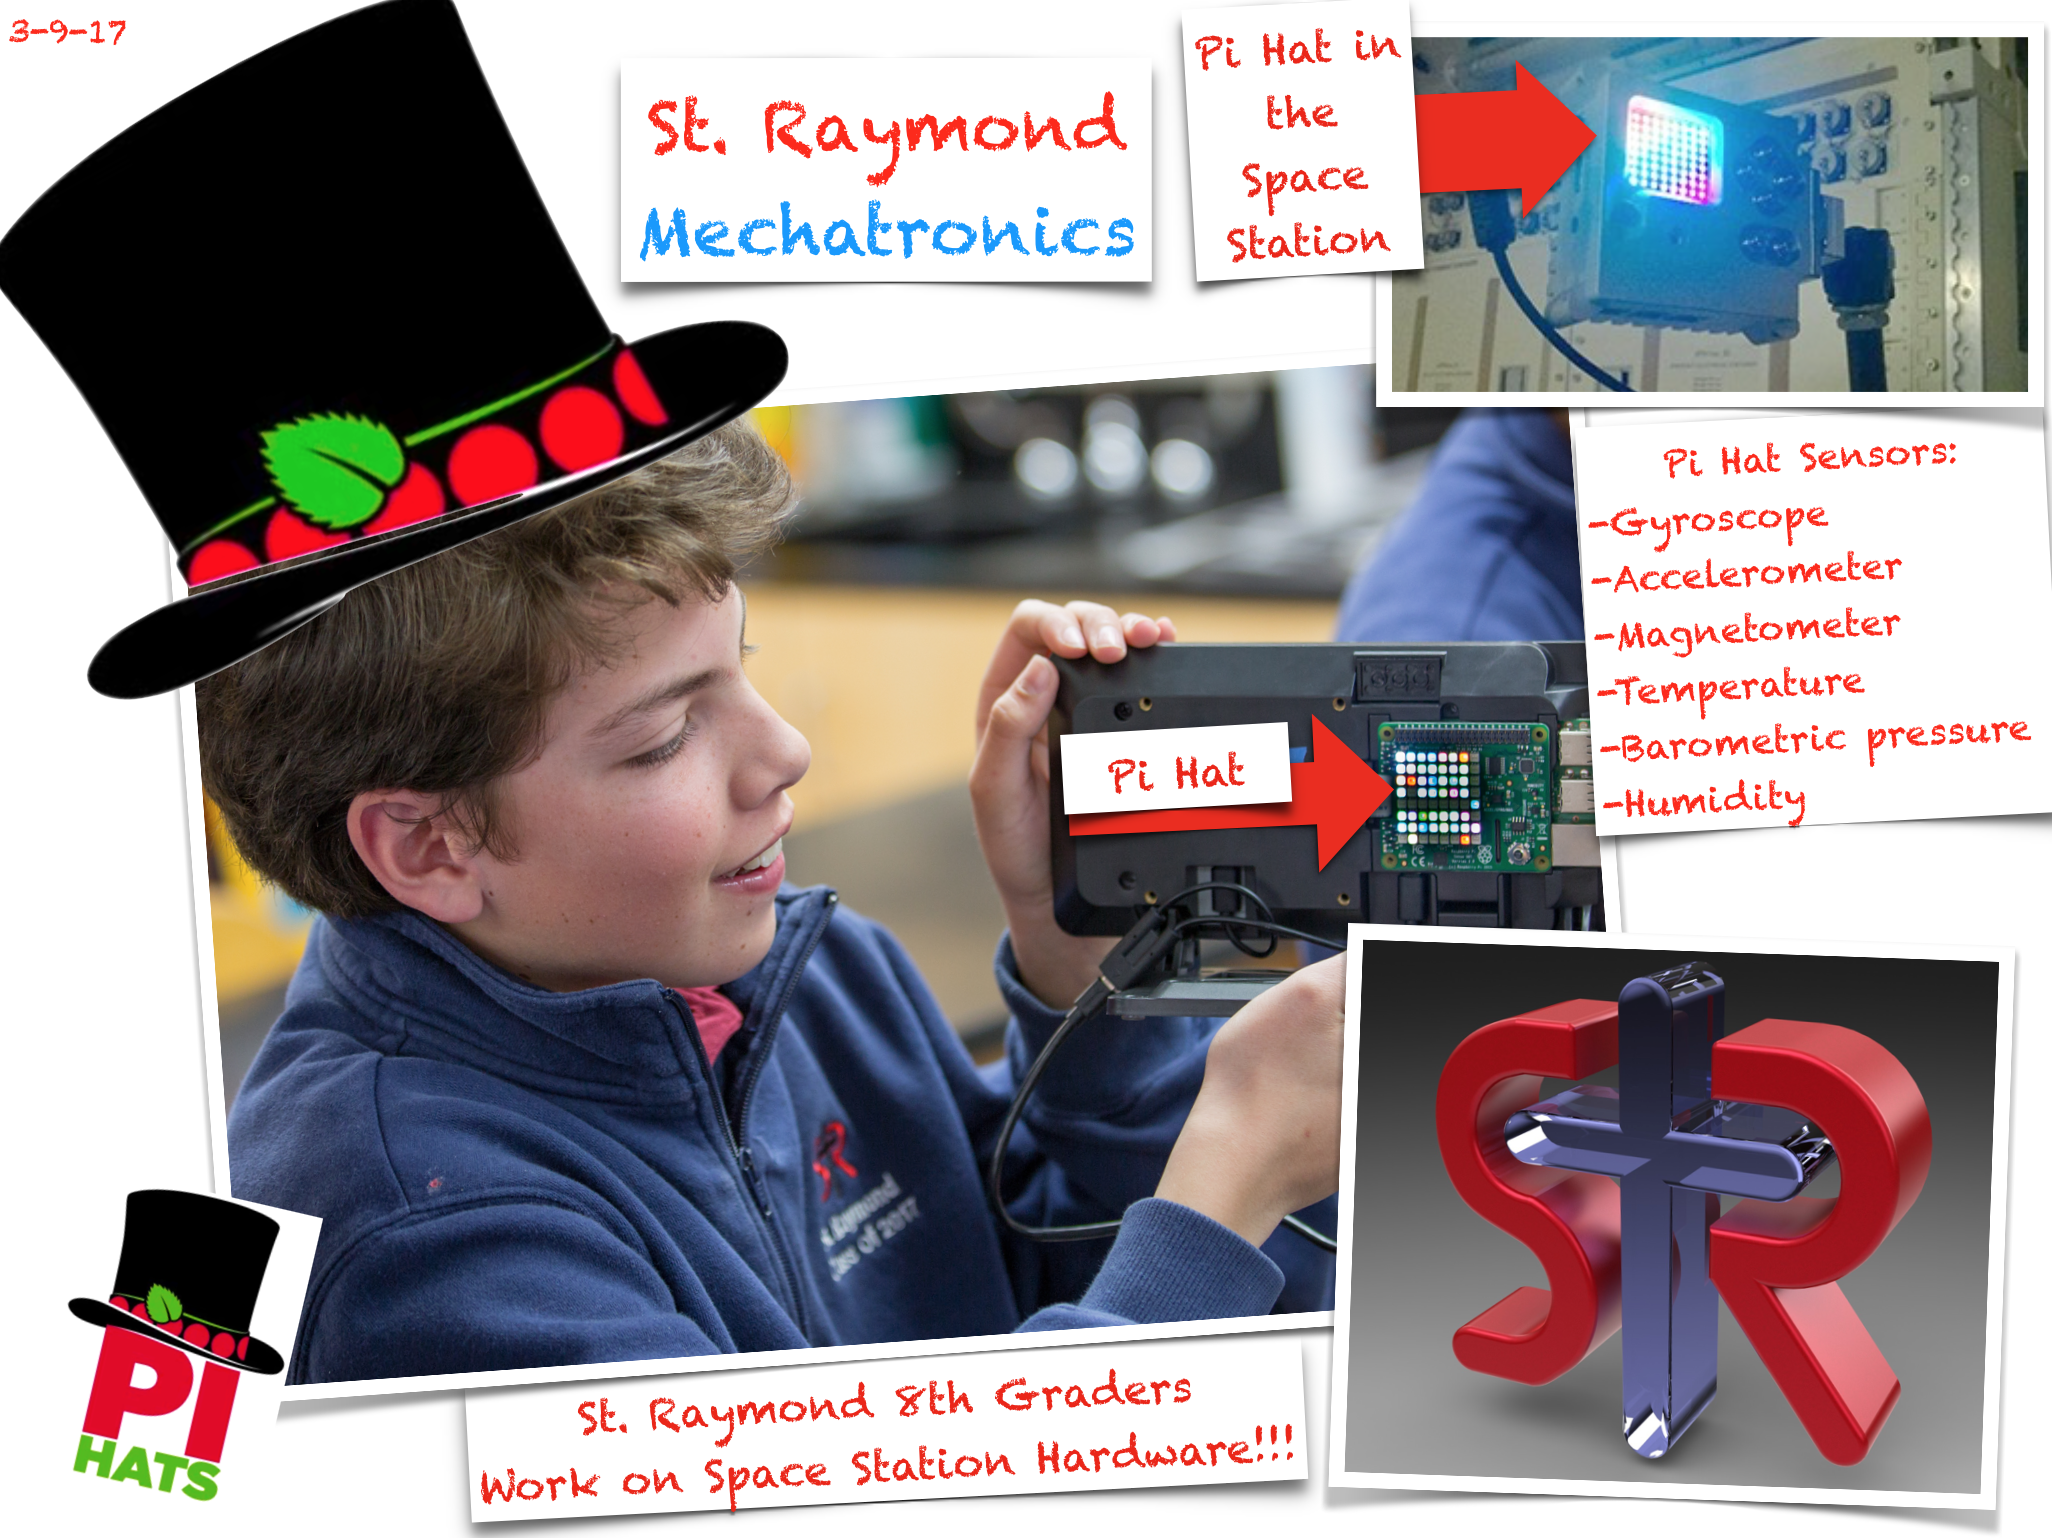 The Pi Hat has six sensors: Gyroscope, Accelerometer, Temperature, Barometer, and Humidity. It also has outputs with a 8x8 LED matrix and inputs with a 5 position joystick in addition to full GPIO pin access.